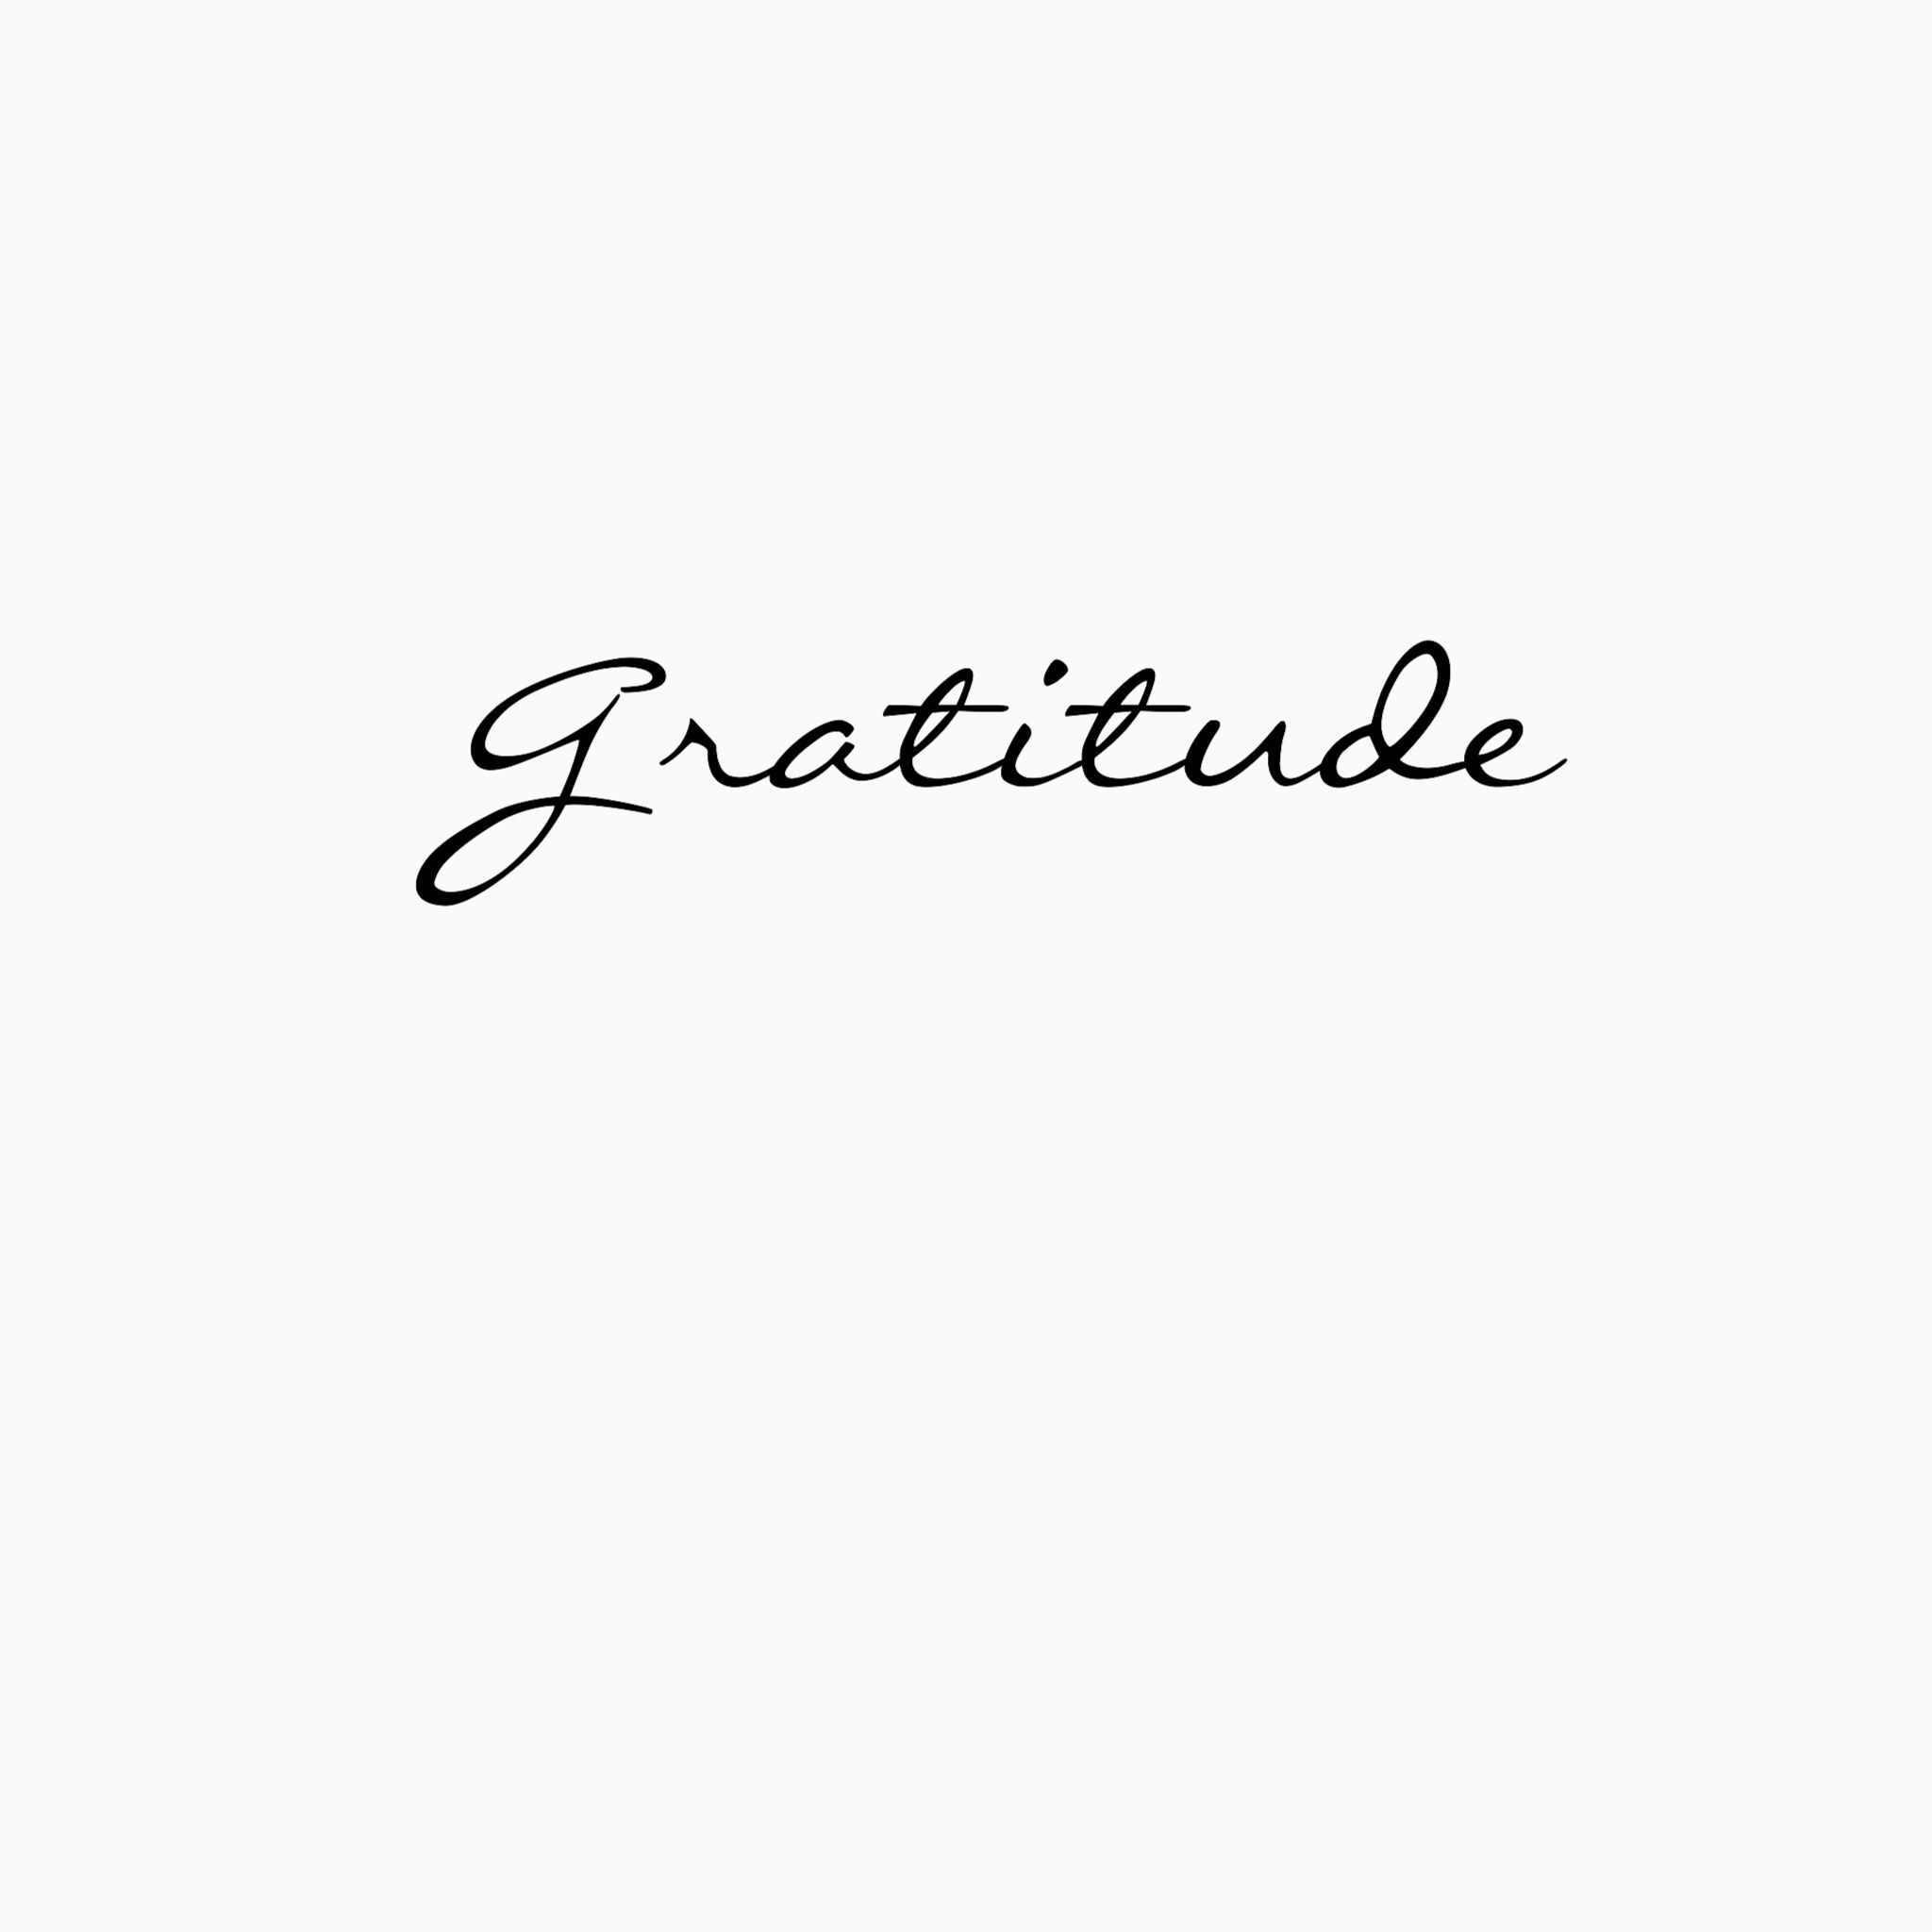 Gratitude & Kindness Quotes